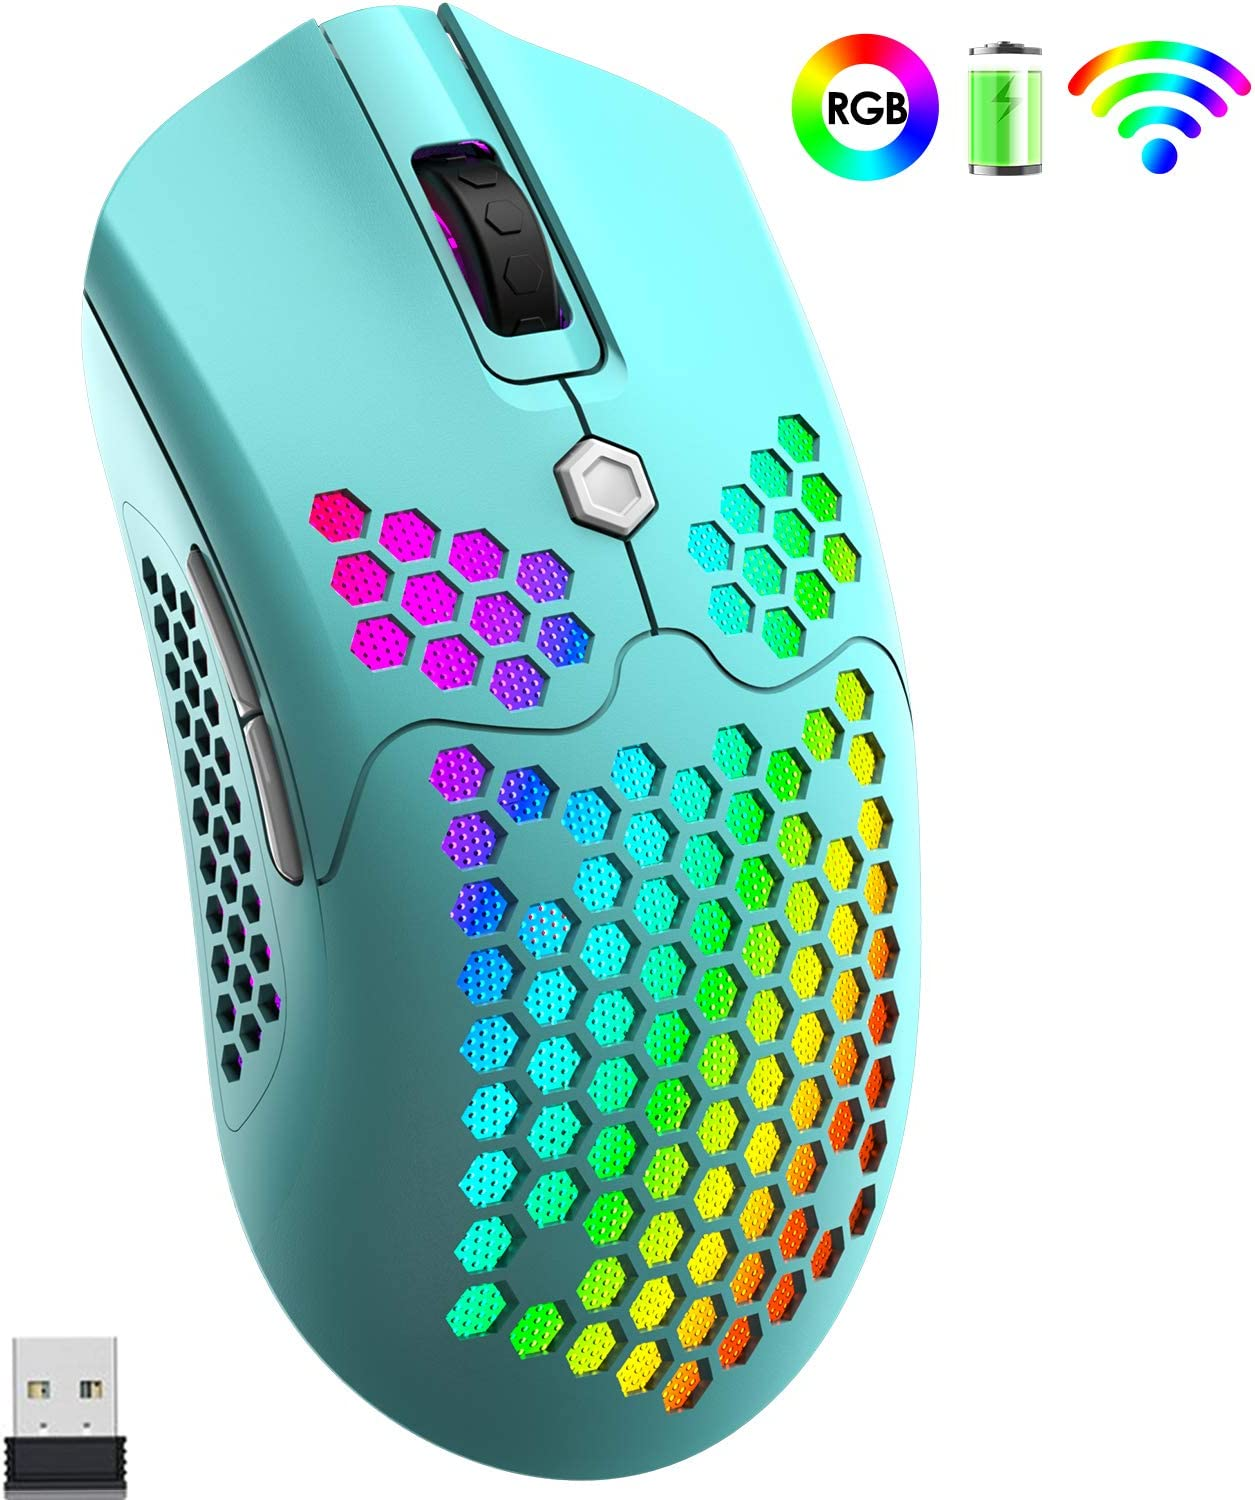 Wireless Gaming Mouse,Lightweight Honeycomb Shell,Rechargeable 800mA Battery,7 Buttons Programmable Driver,Pixart 3325 12000 DPI 16 RGB Backlit Ultralight Mouse for PC Gamers(Macaron Green)